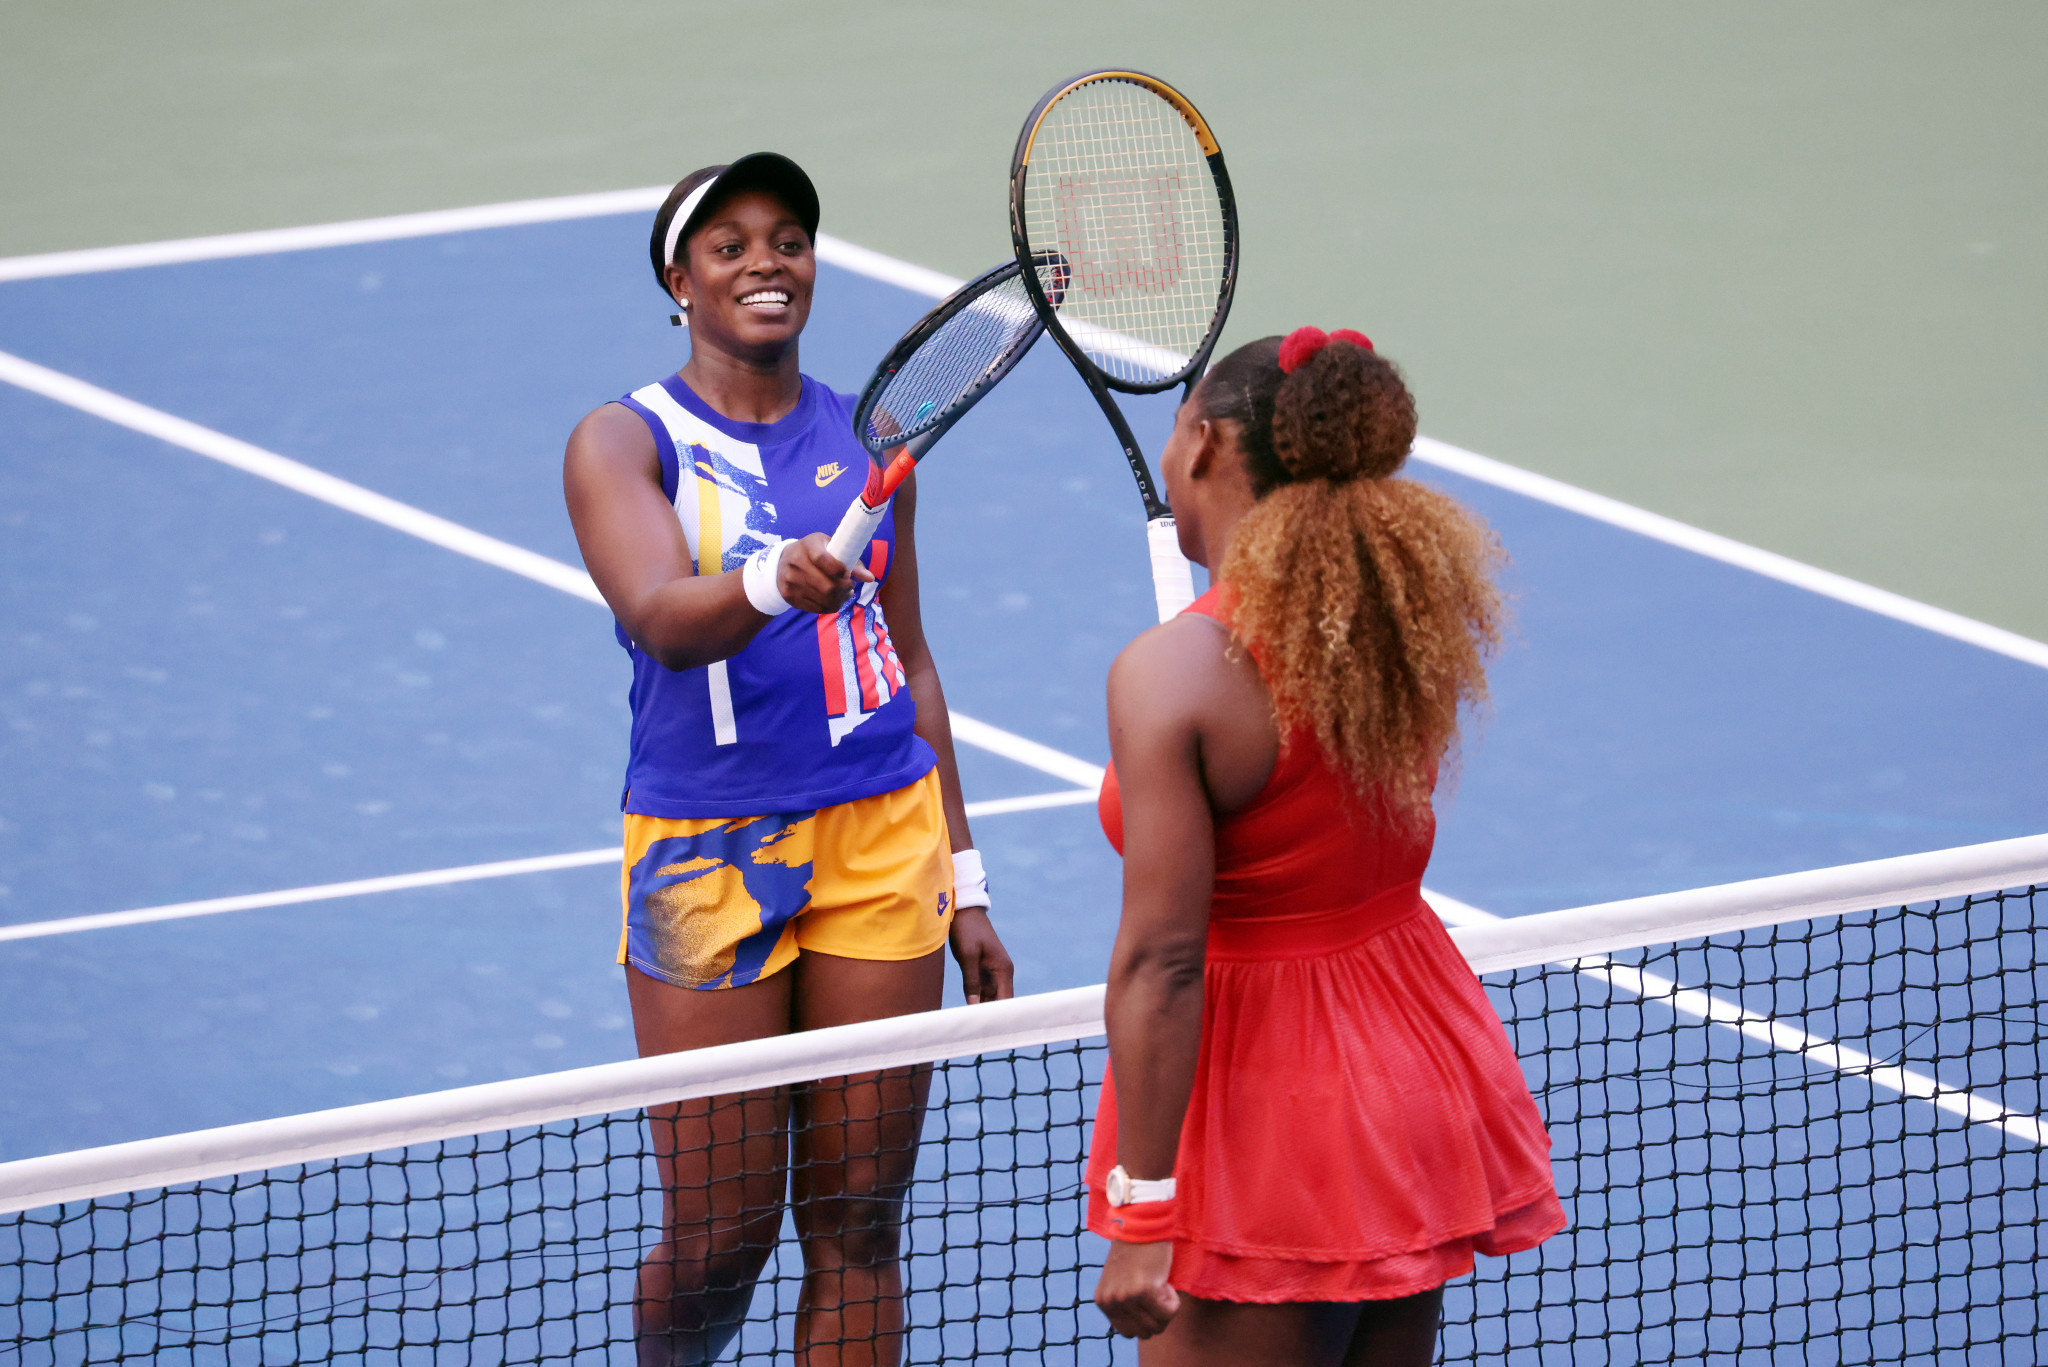 Serena Williams cheered on by young daughter as keeps hopes of 24th Grand Slam title alive